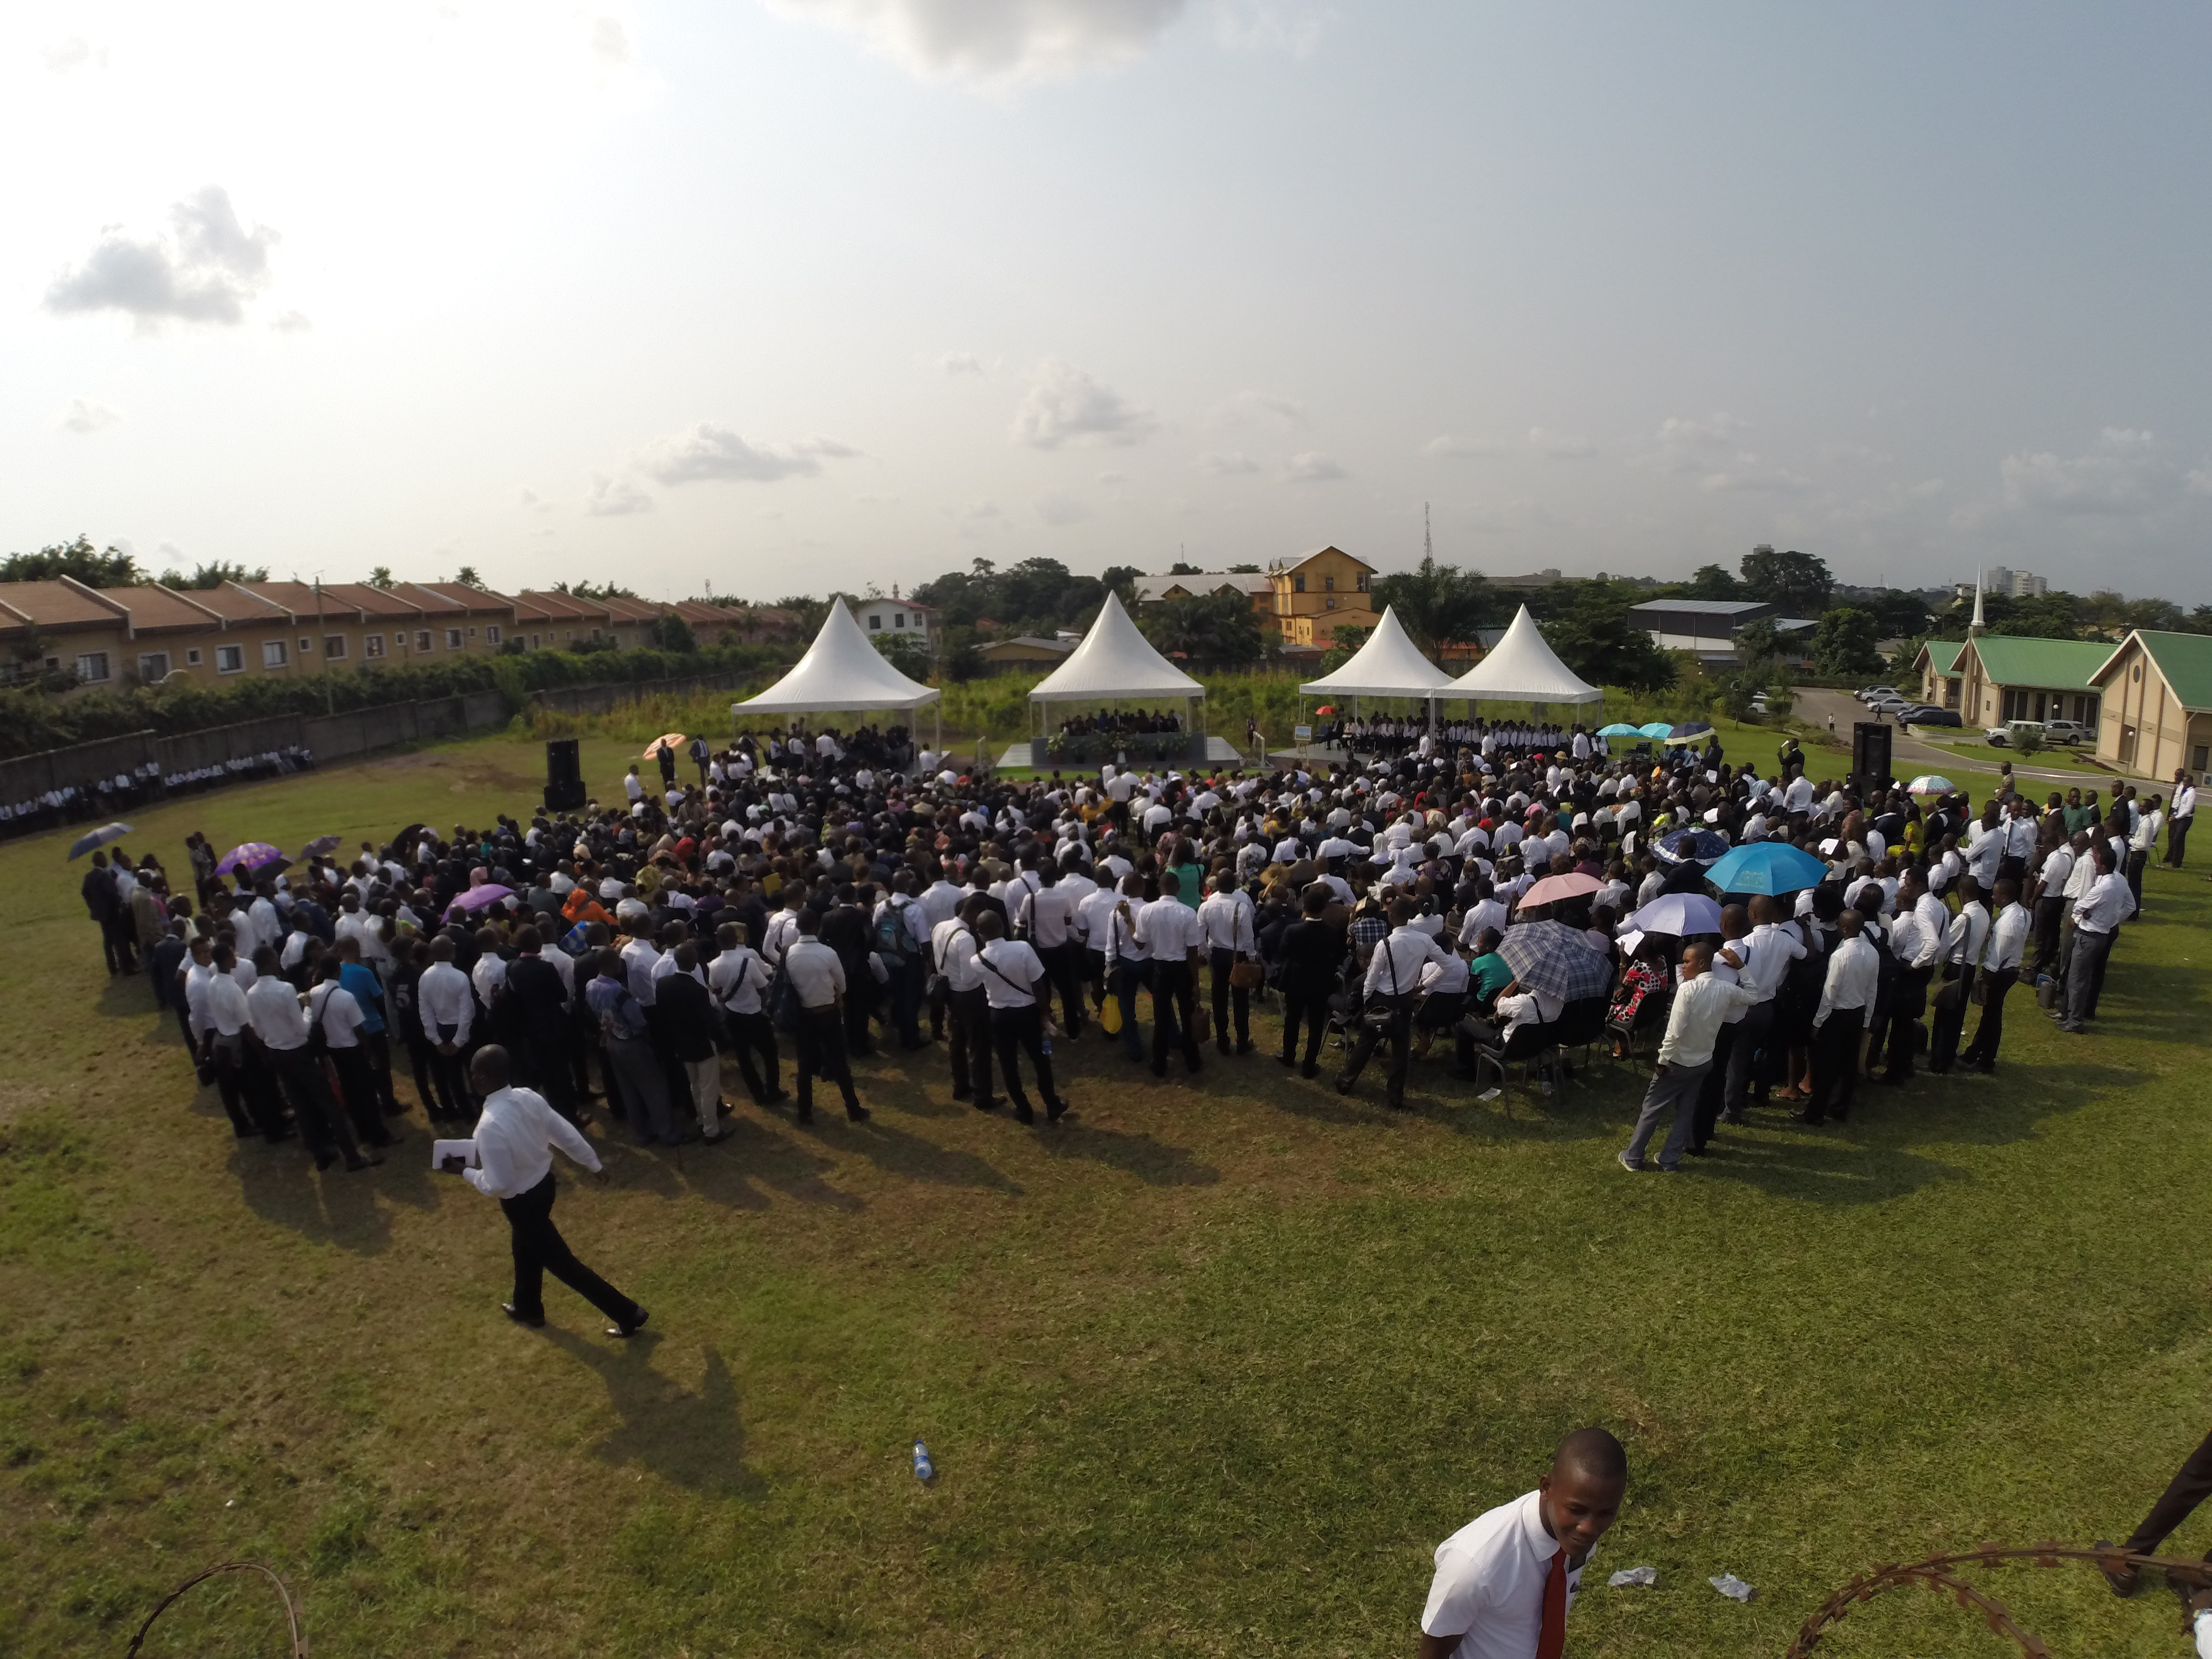 Members of The Church of Jesus Christ of Latter-day Saints gather to participate in the beginning of construction for the Kinshasa Democratic Republic of the Congo Temple on Friday, February 12, 2016.